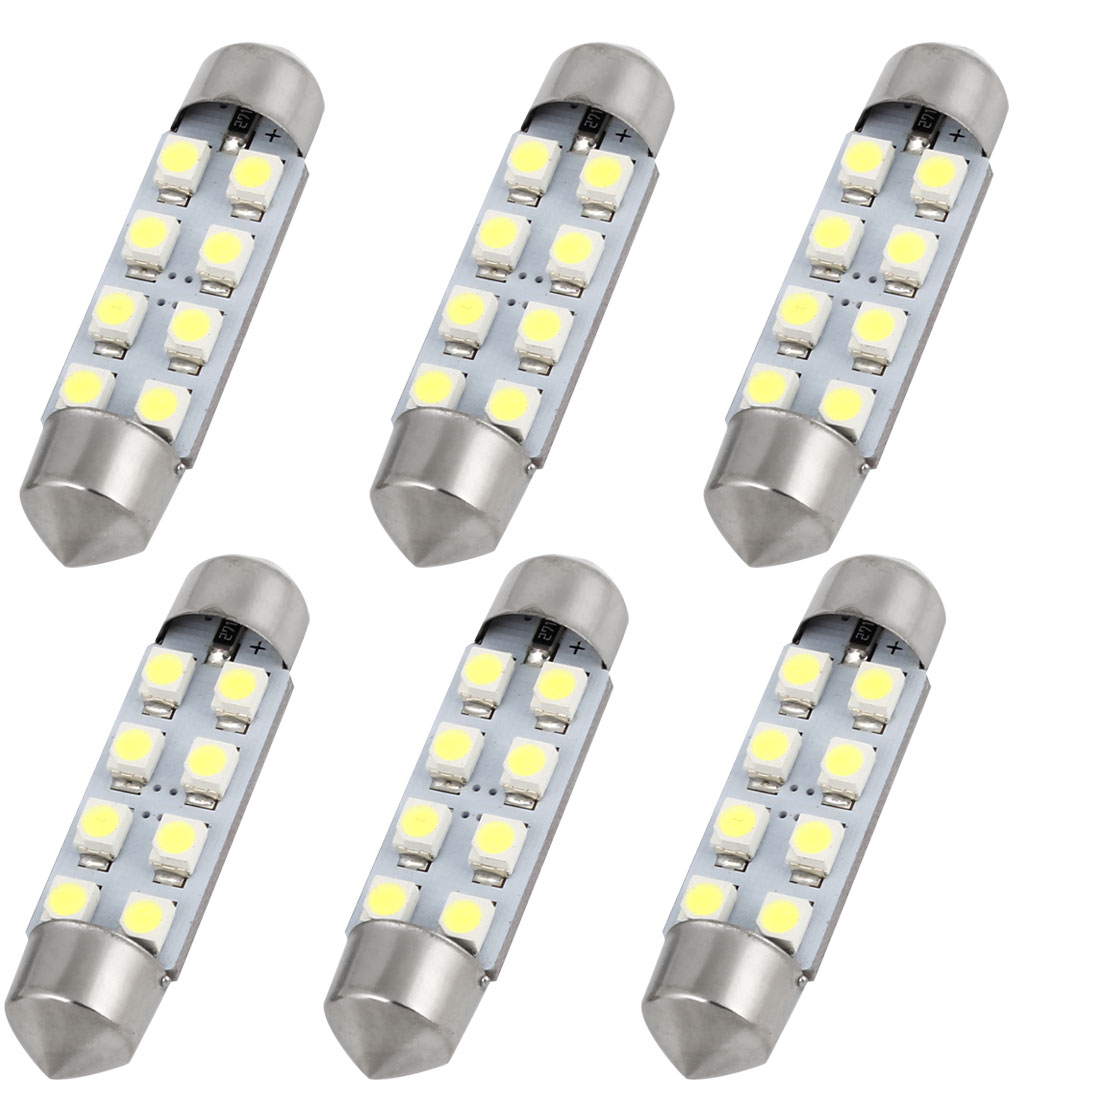 6PCS 41mm 3528 8 SMD White Car Festoon Dome LED Map Light 569 6429 Internal